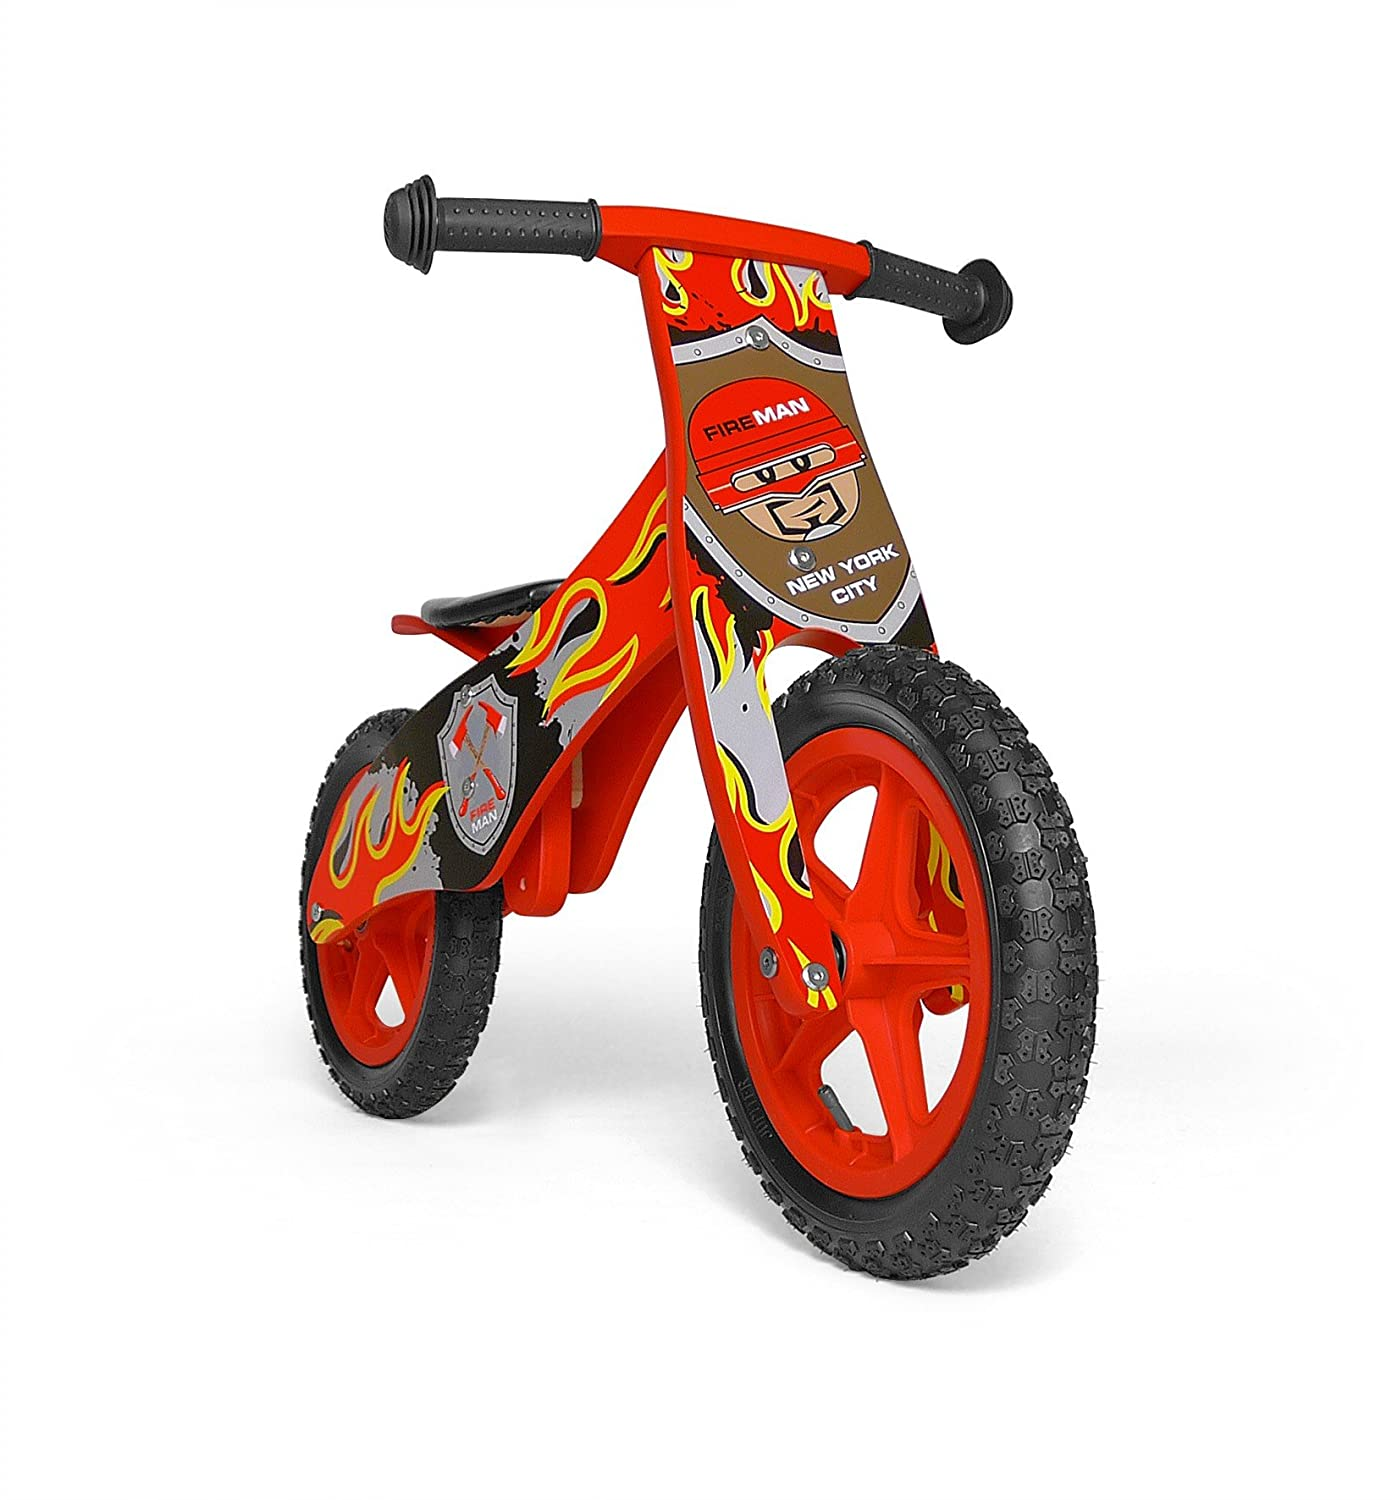 8056b507055 MILLY MALLY 20905 Wooden Balance Bike Duplo Fireman, Multi-Colour:  Amazon.co.uk: Toys & Games